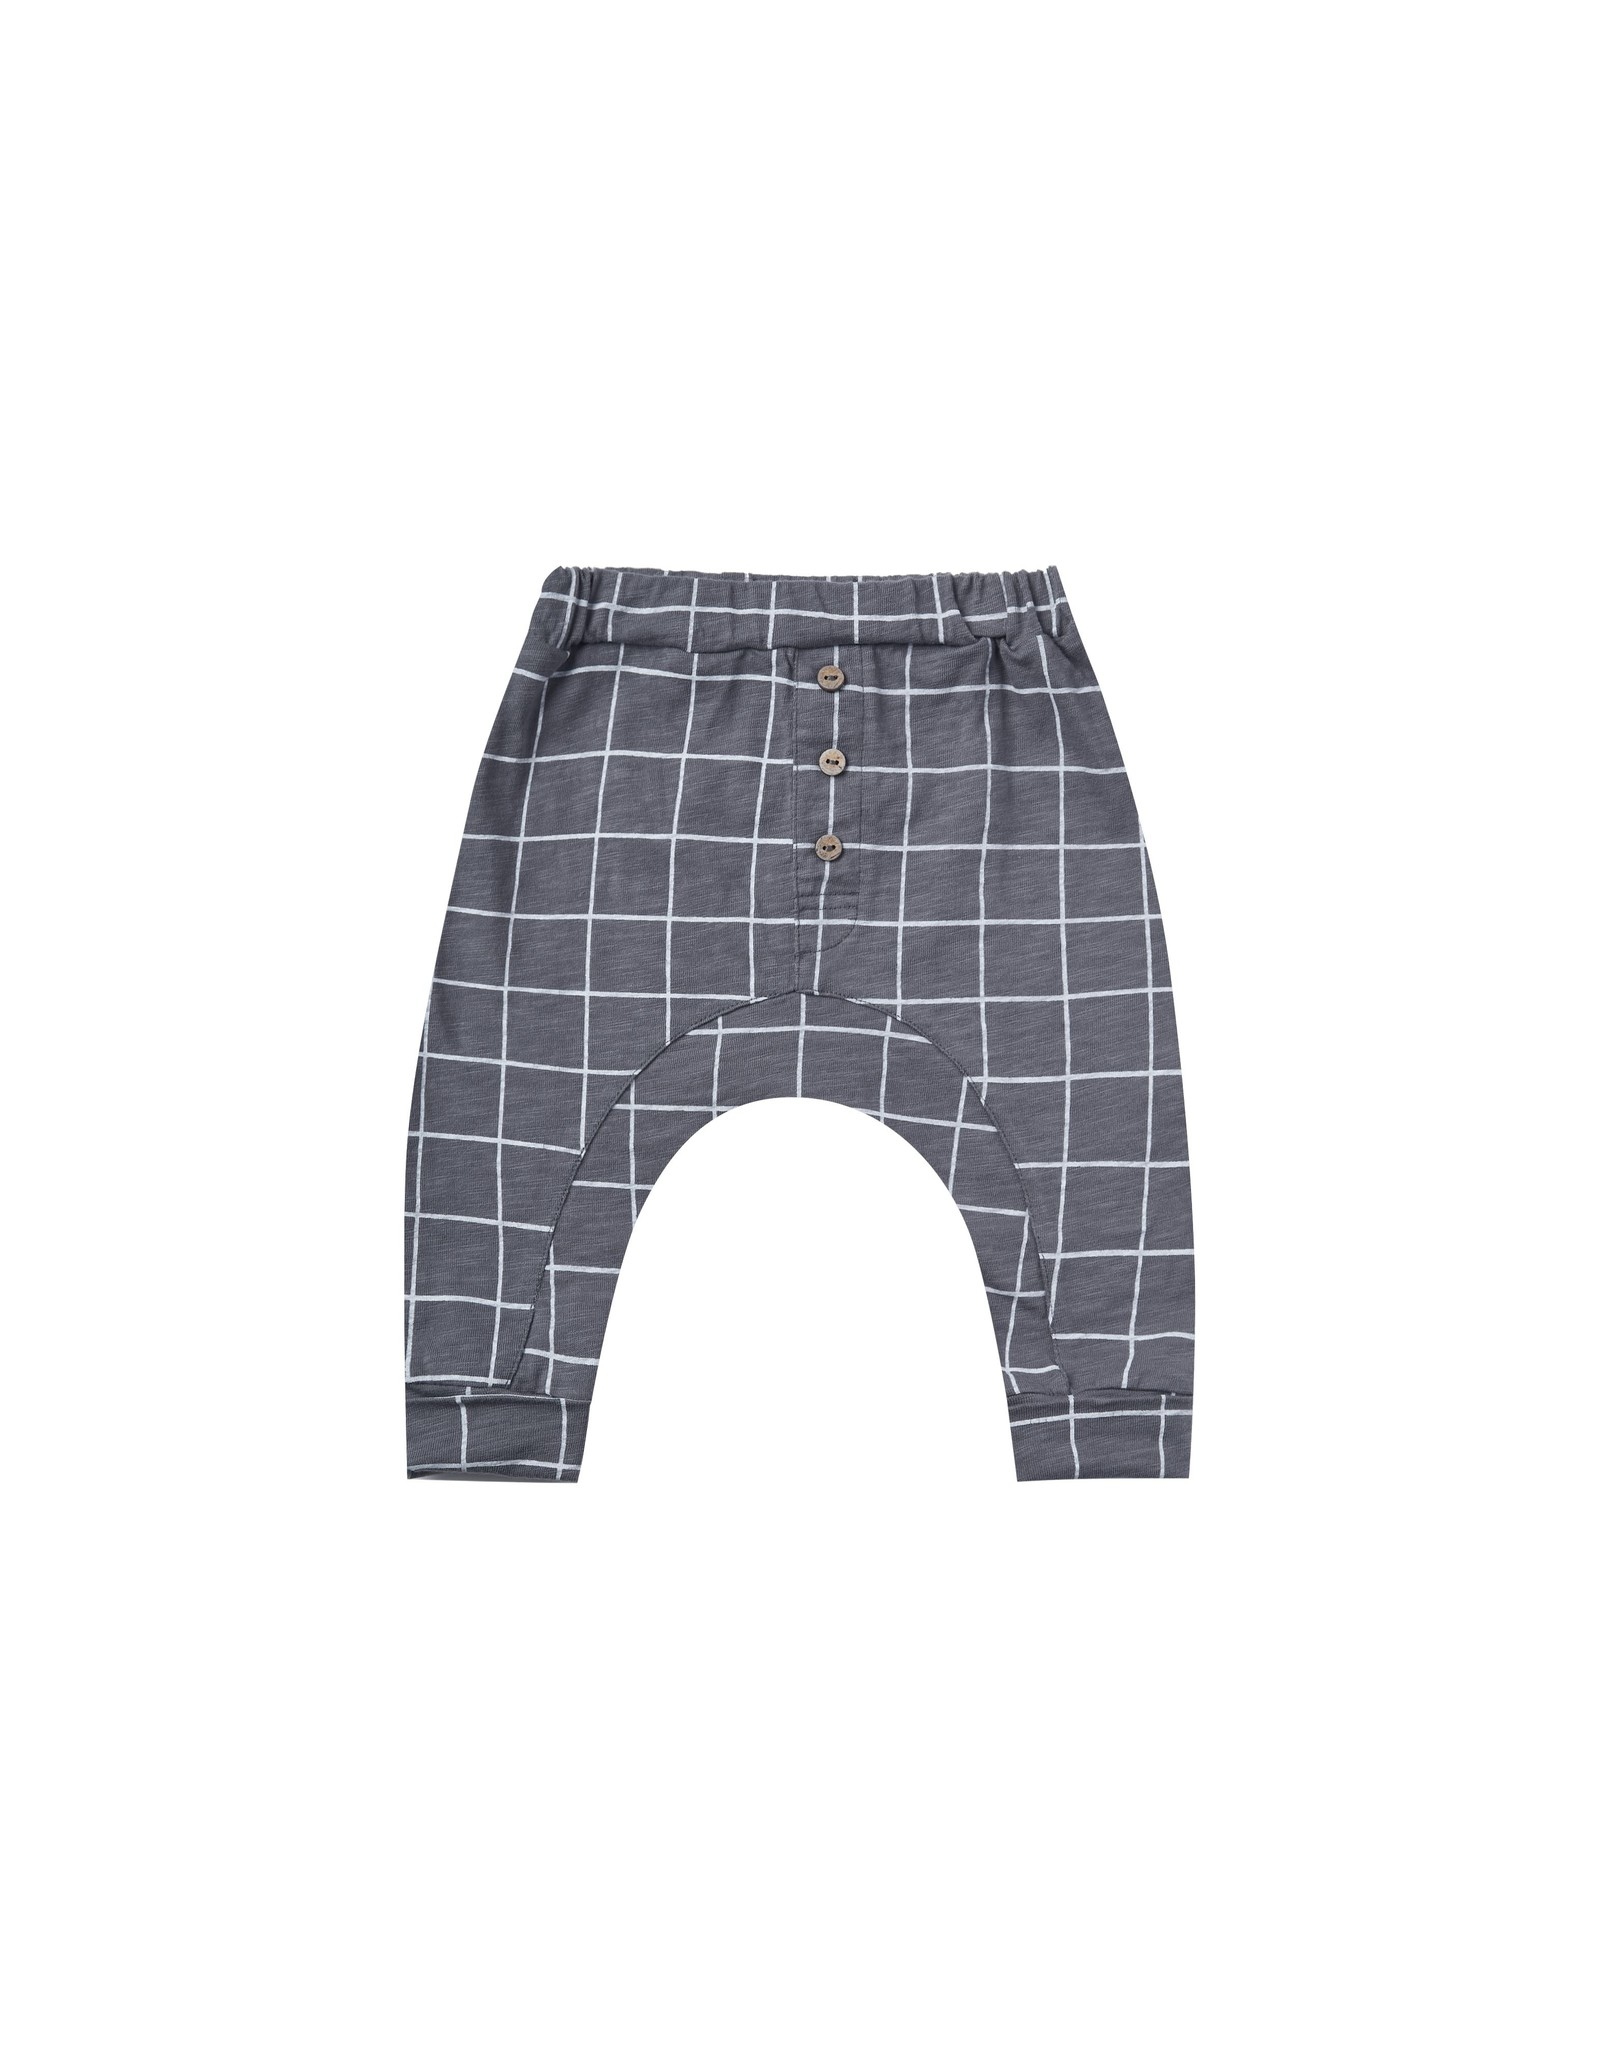 Rylee and Cru check slub pant- indigo